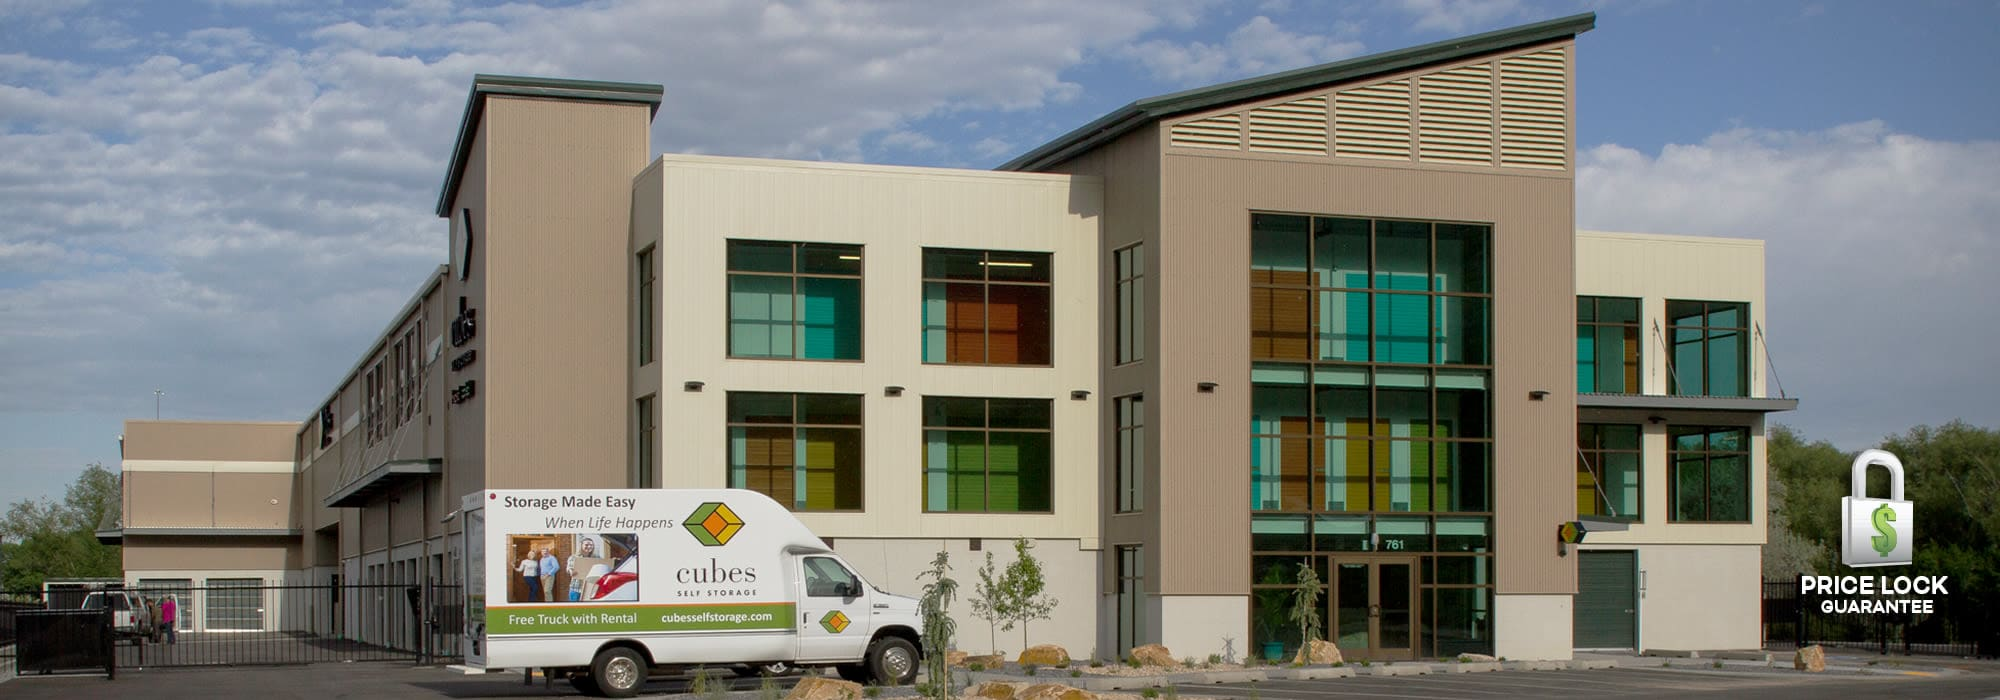 Cubes Self Storage in Farmington, Utah